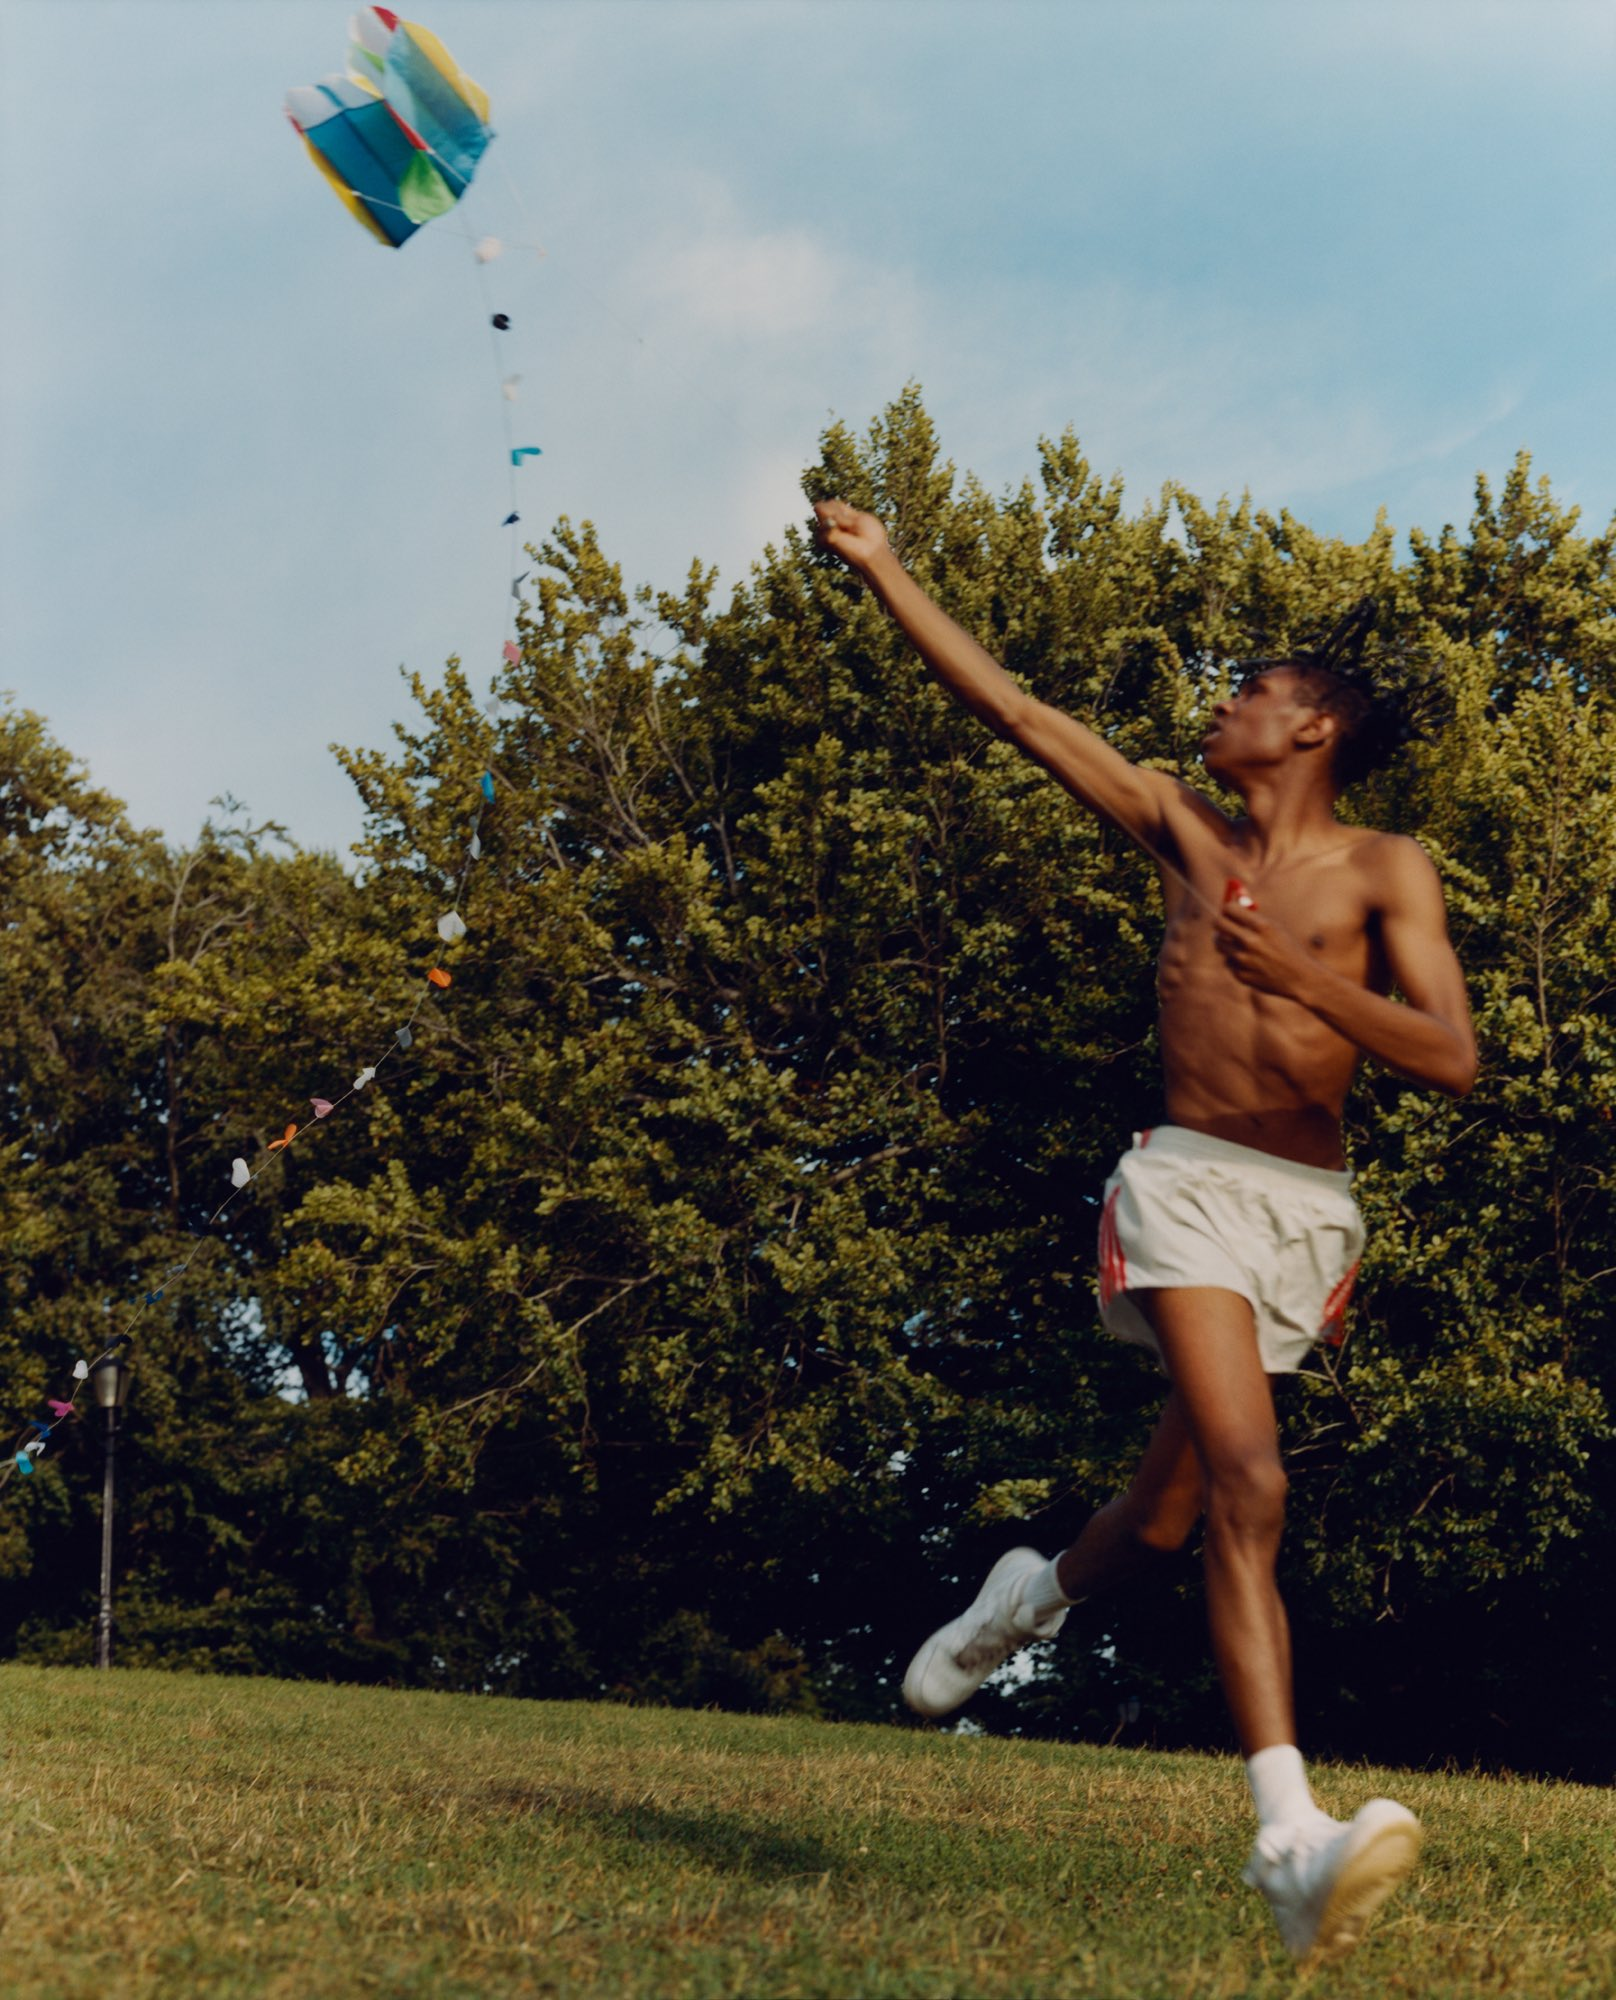 Color photo of an adolescent boy mid-leap with a kite in a field